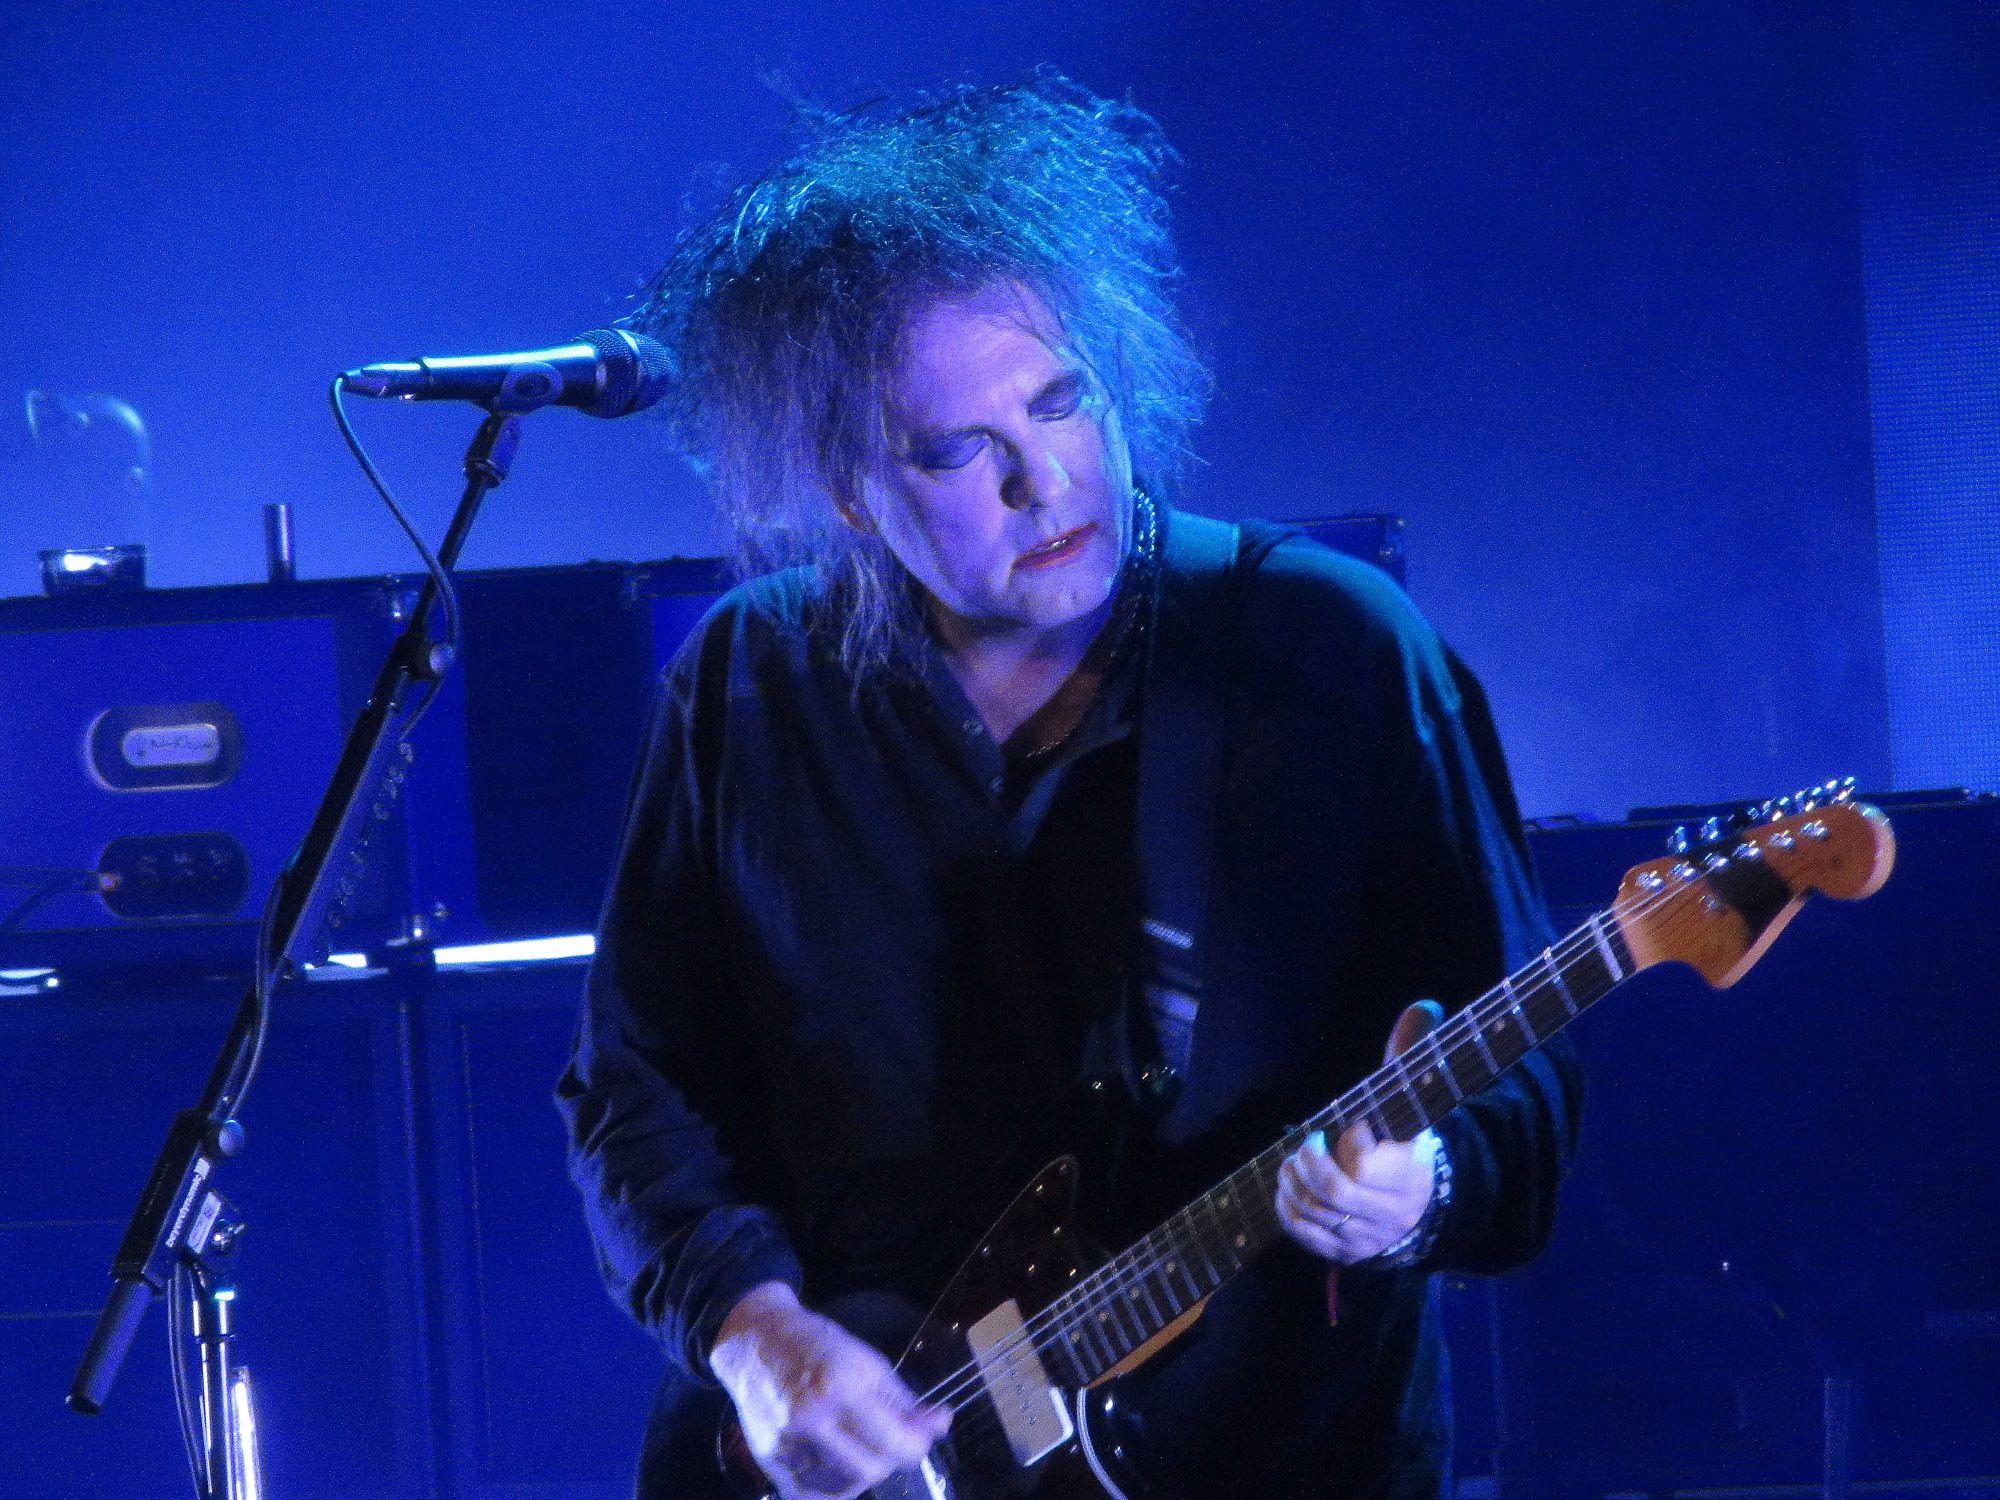 On a blue-lit stage, behind a microphone, a man with unkempt dark hair plays guitar. He is wearing make-up.